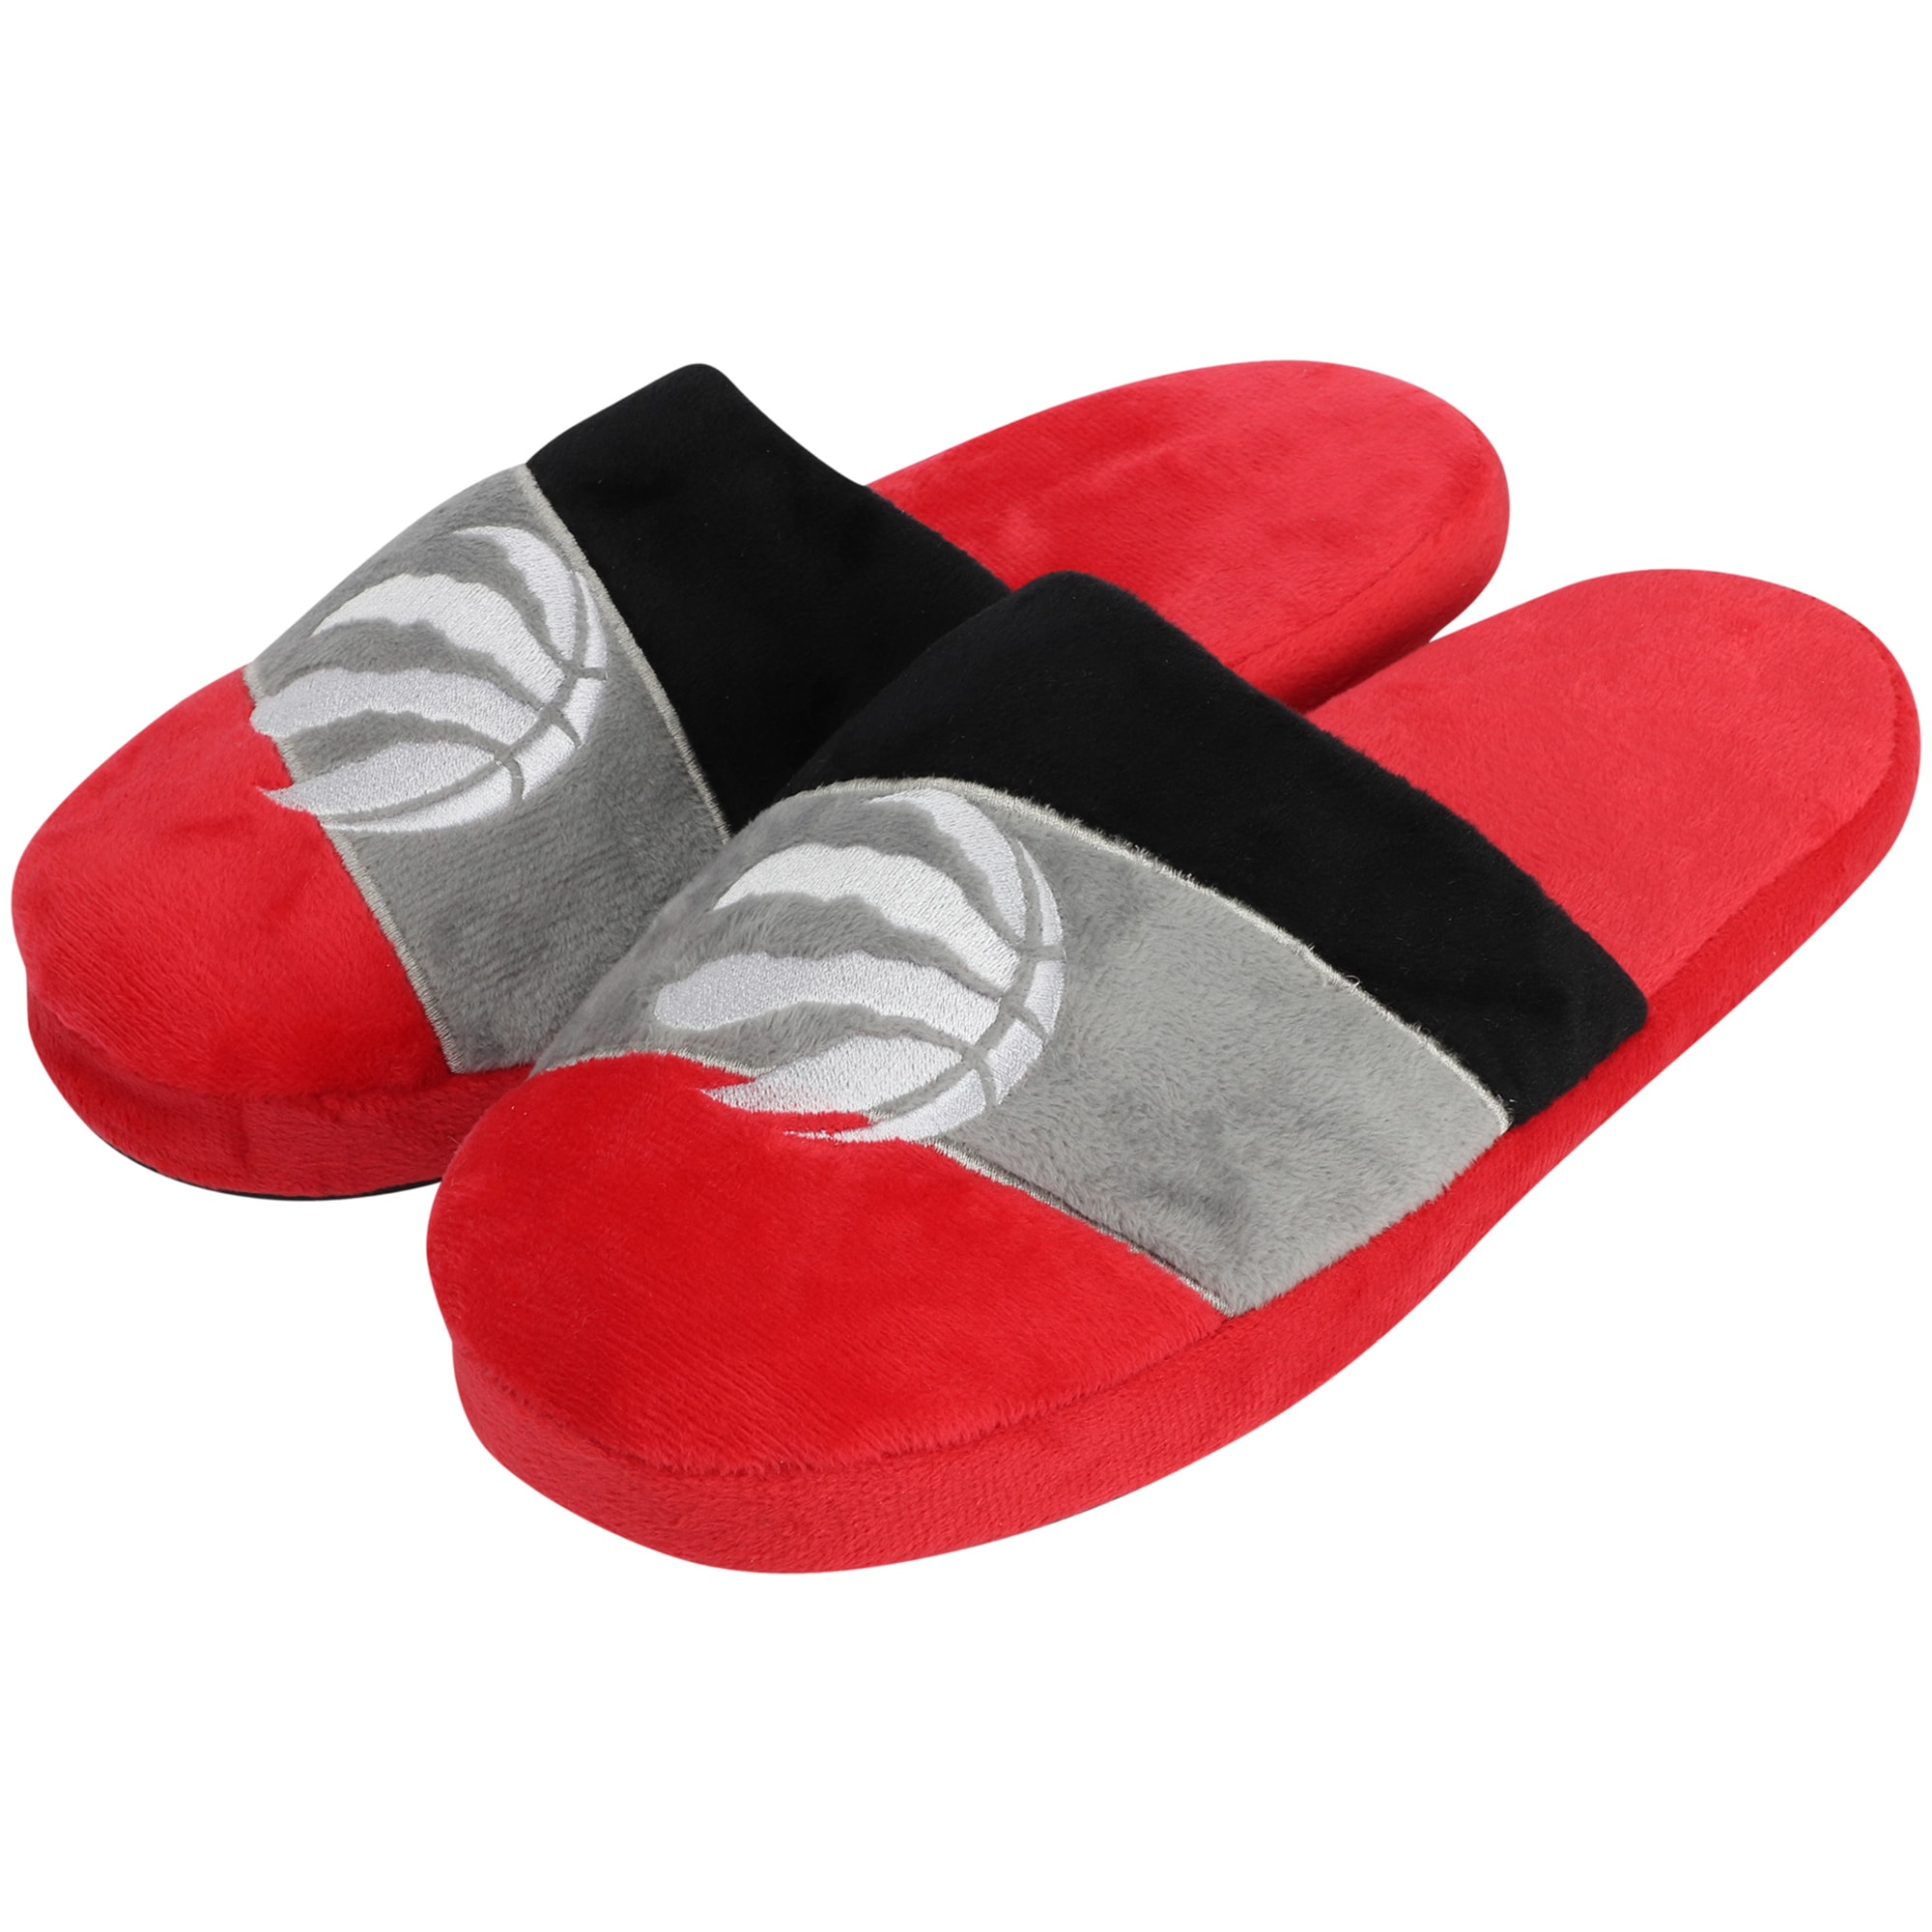 Toronto Raptors Team Colorblock Slide Slippers